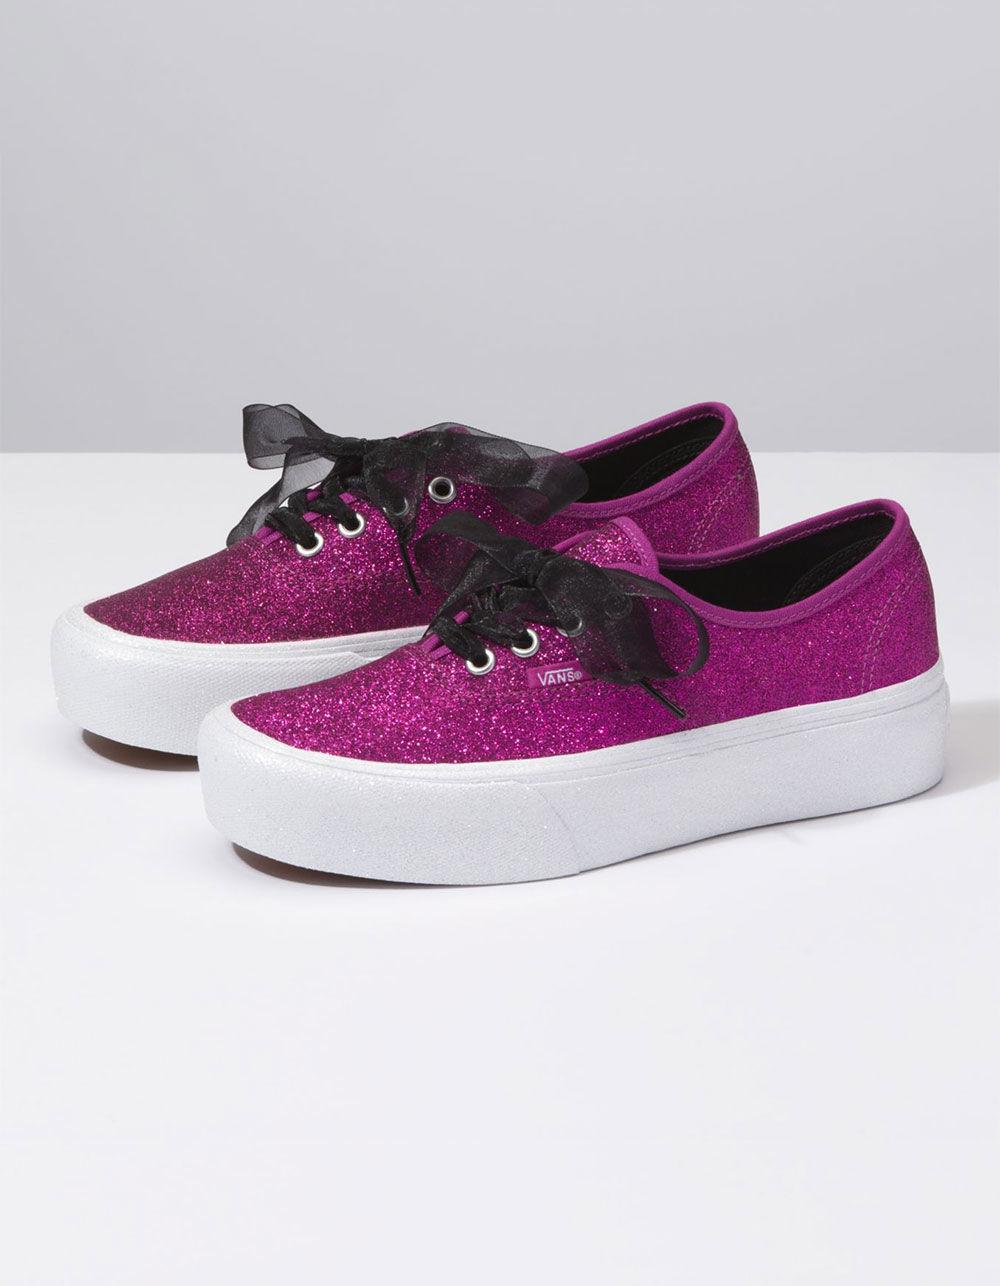 ebcc32b57e Womens Authentic Shoes Platform Vans Lyst In Pink Glitter 7A4a8Hq